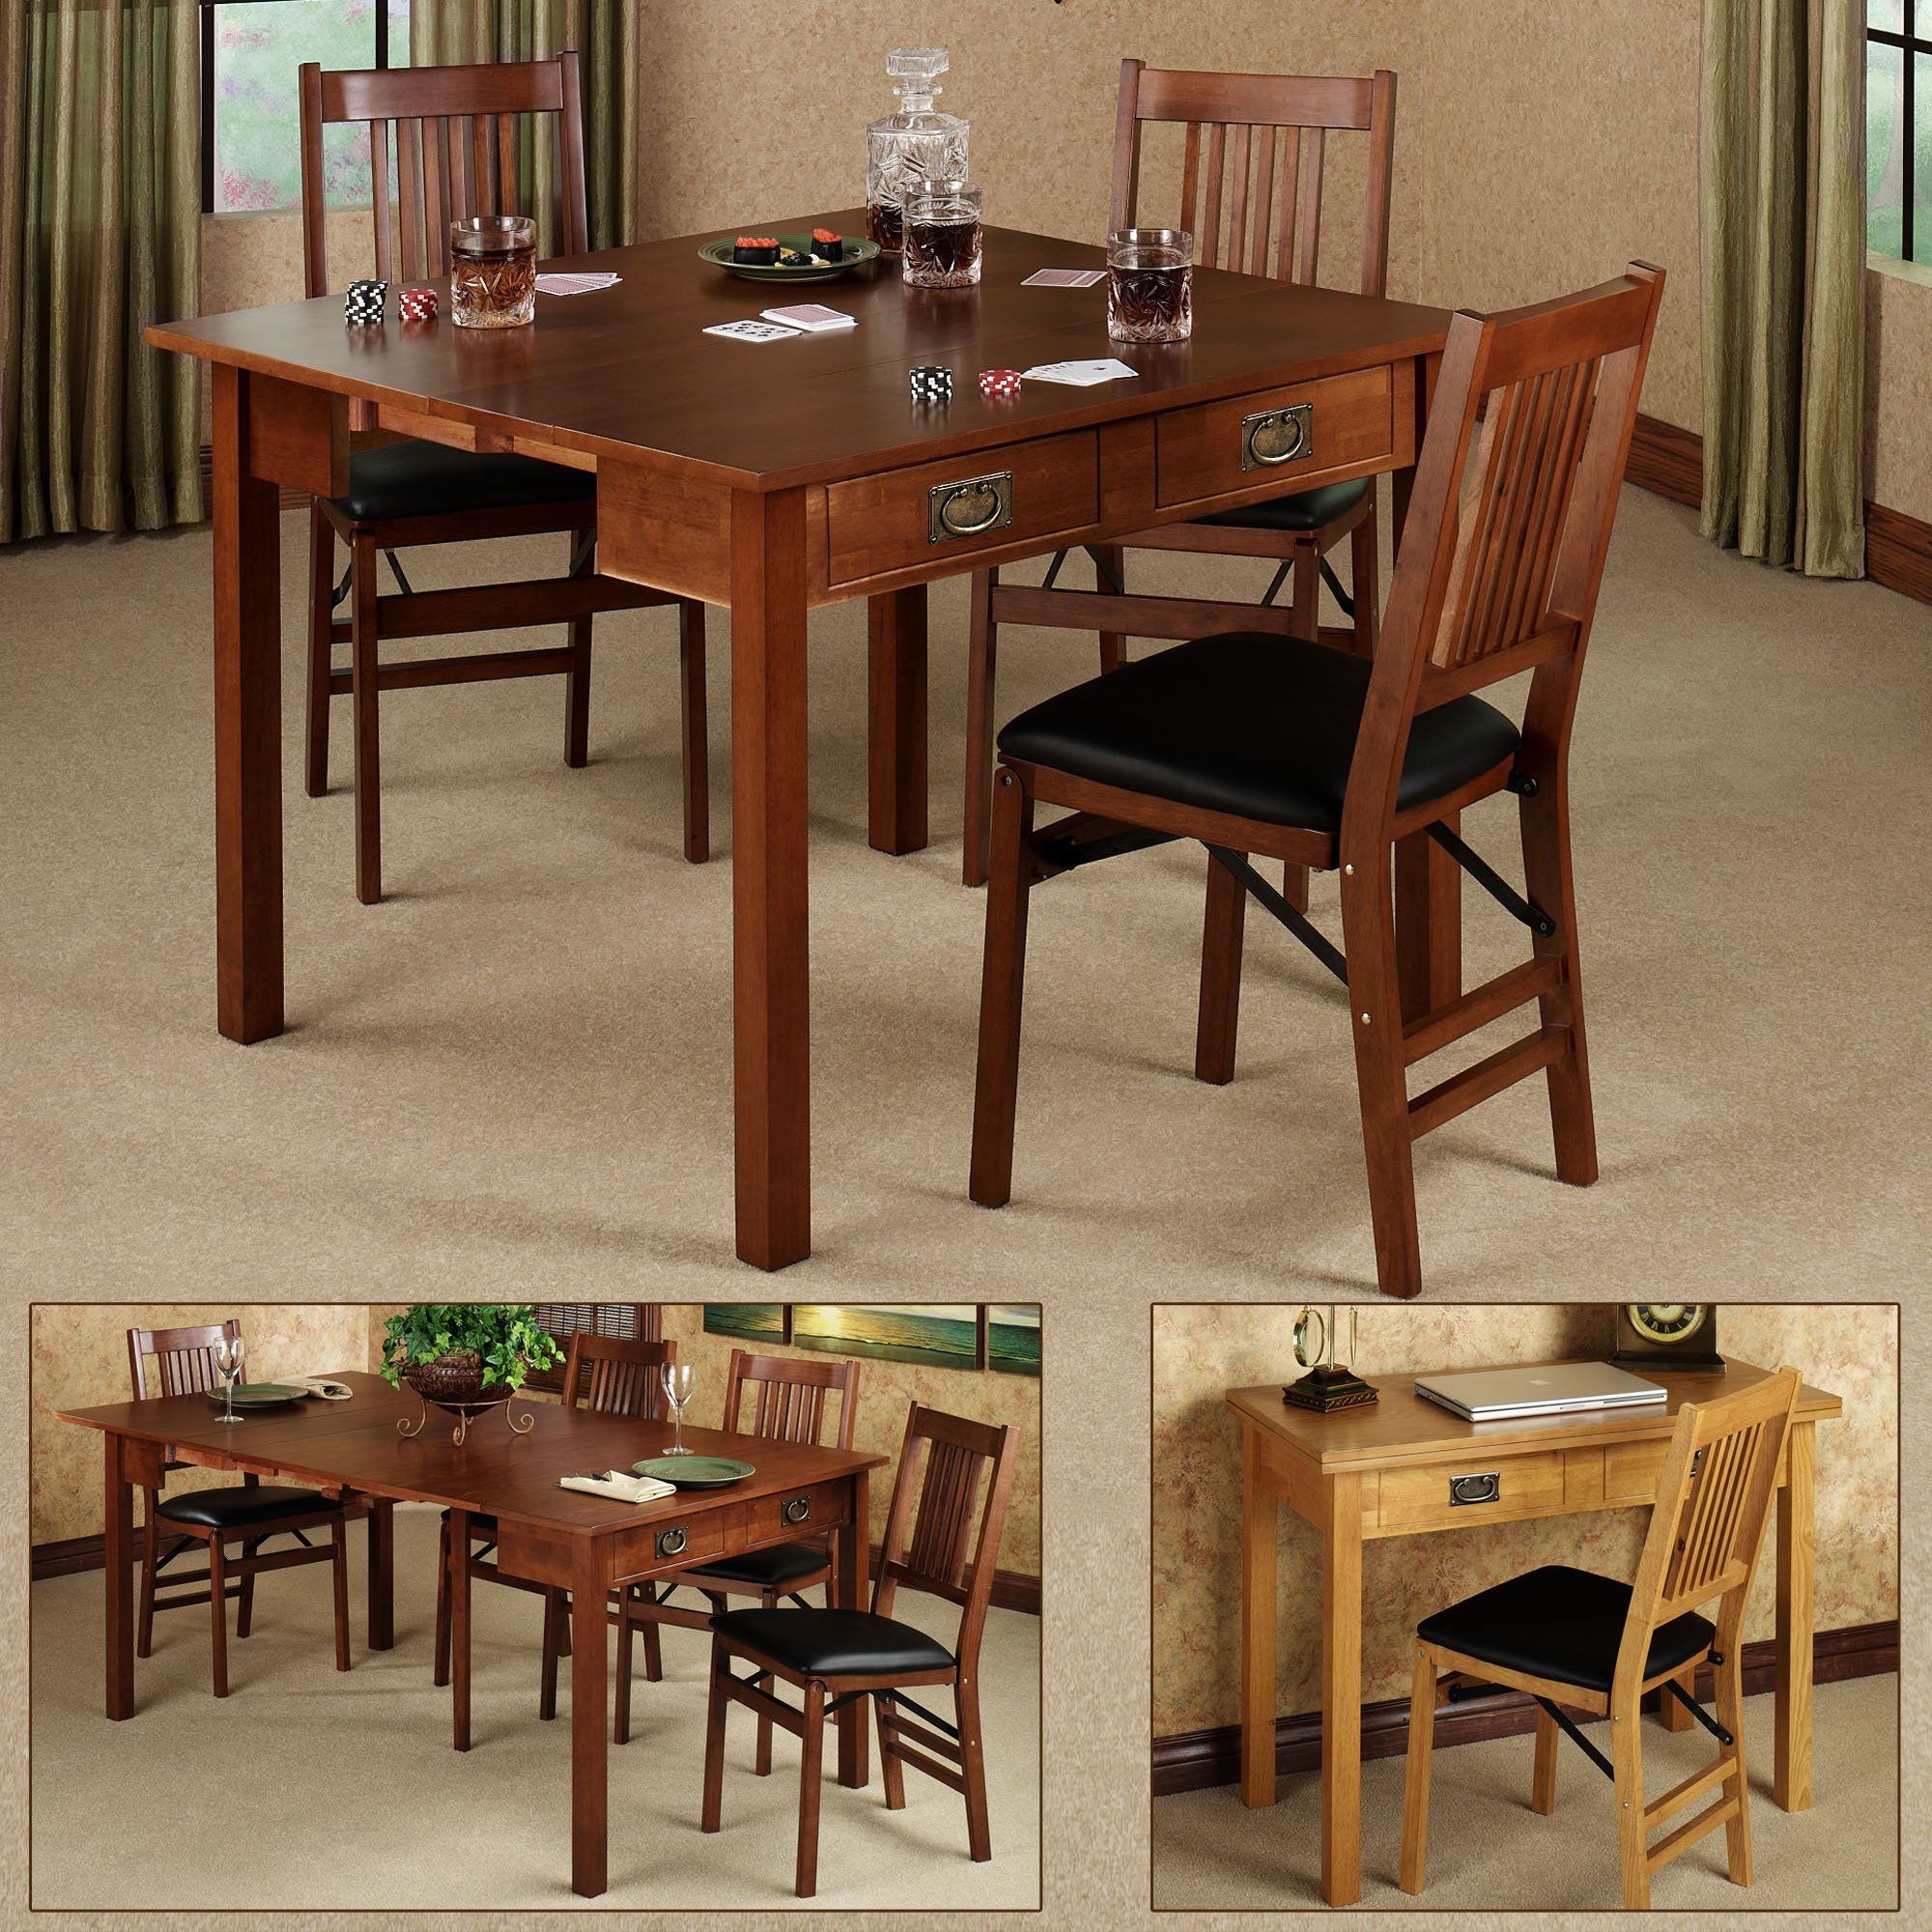 Mission Fruitwood Finish Convertible 3 In 1 Table Dining Room